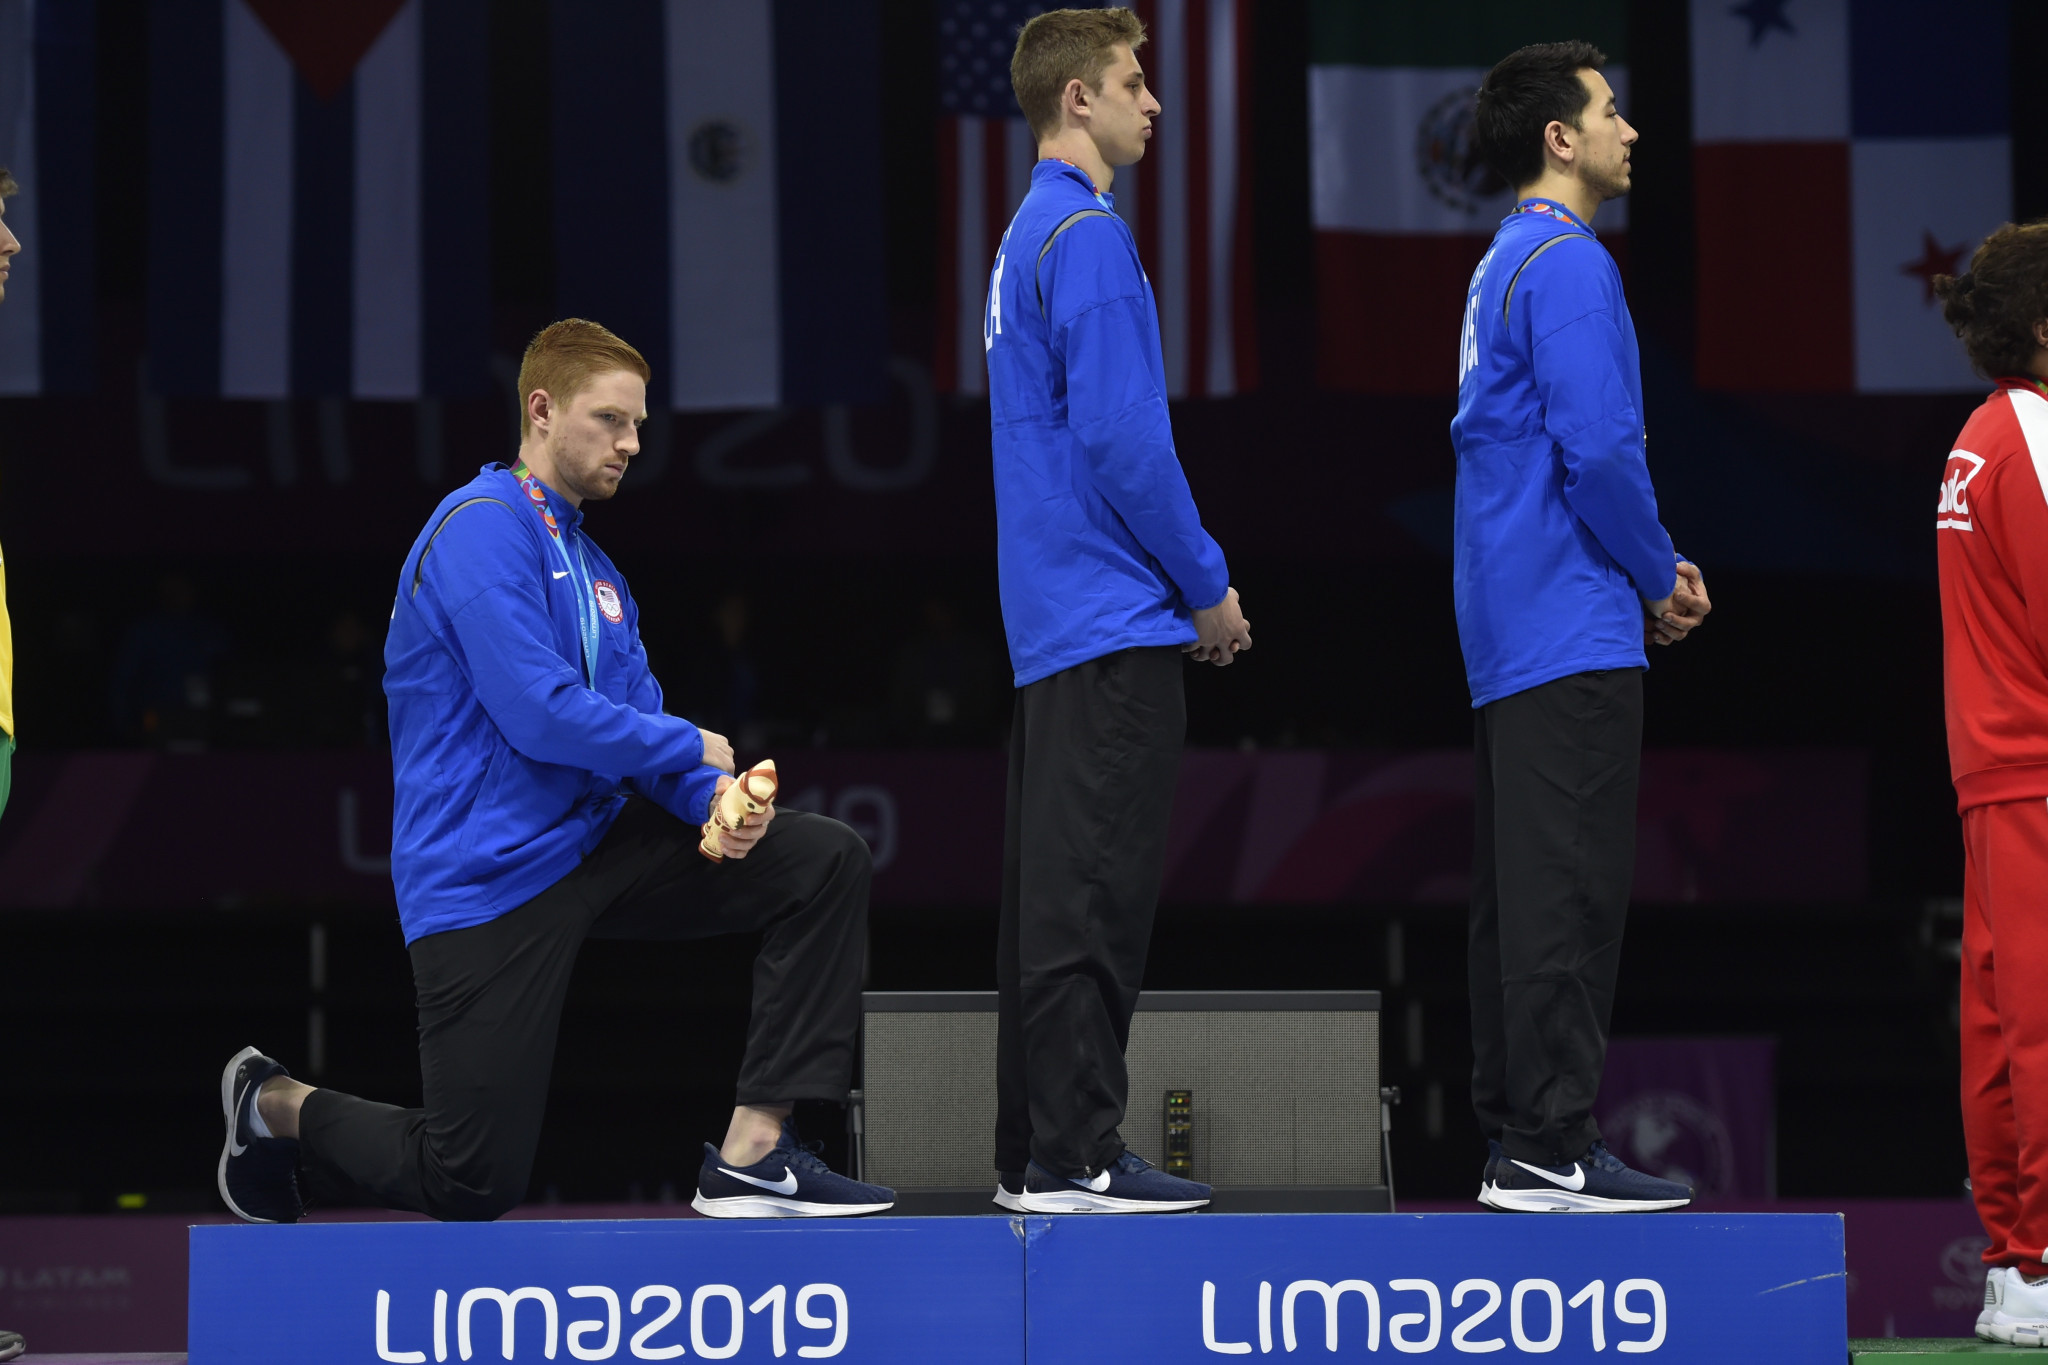 Olympic bronze medallist US fencer Race Imboden makes his protest against racism and gun laws back home after winning team gold at this summer's Pan American Games ©Getty Images